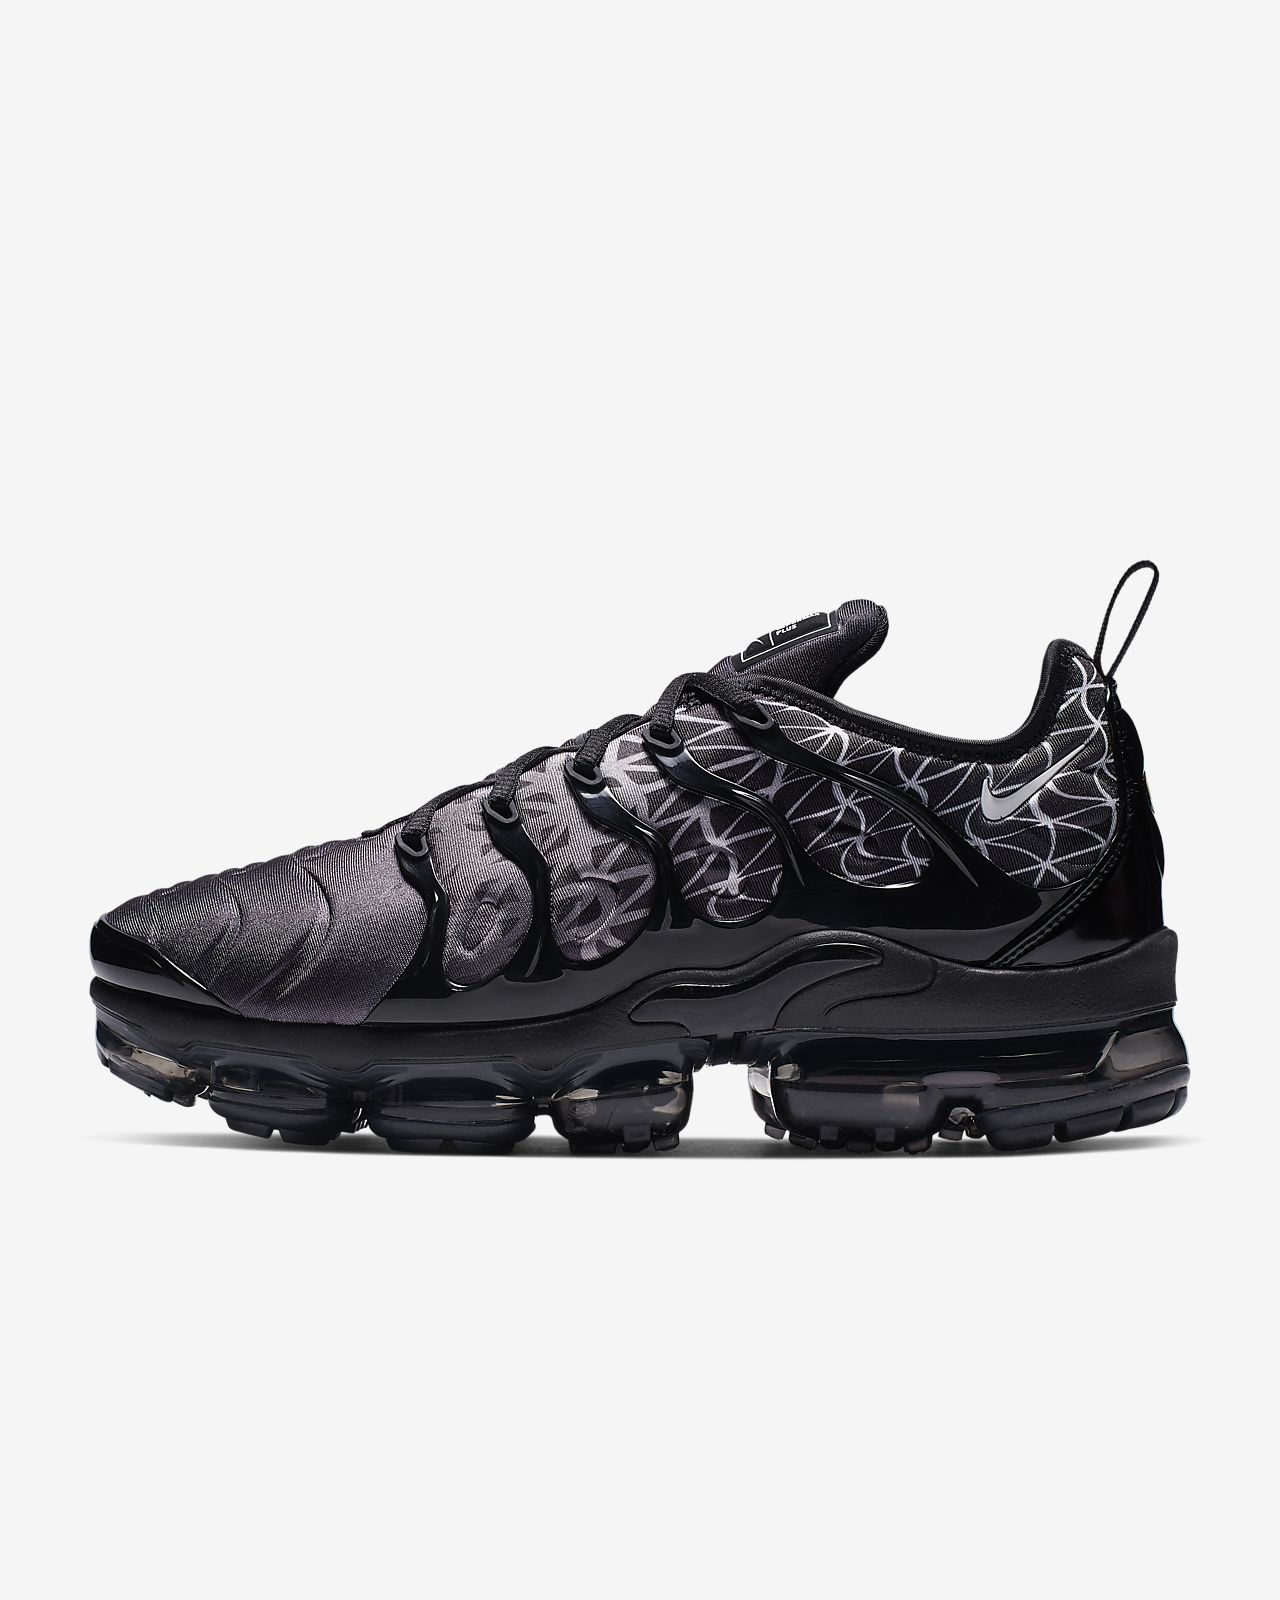 sneakers for cheap 83f67 f0289 ... Chaussure Nike Air VaporMax Plus pour Homme